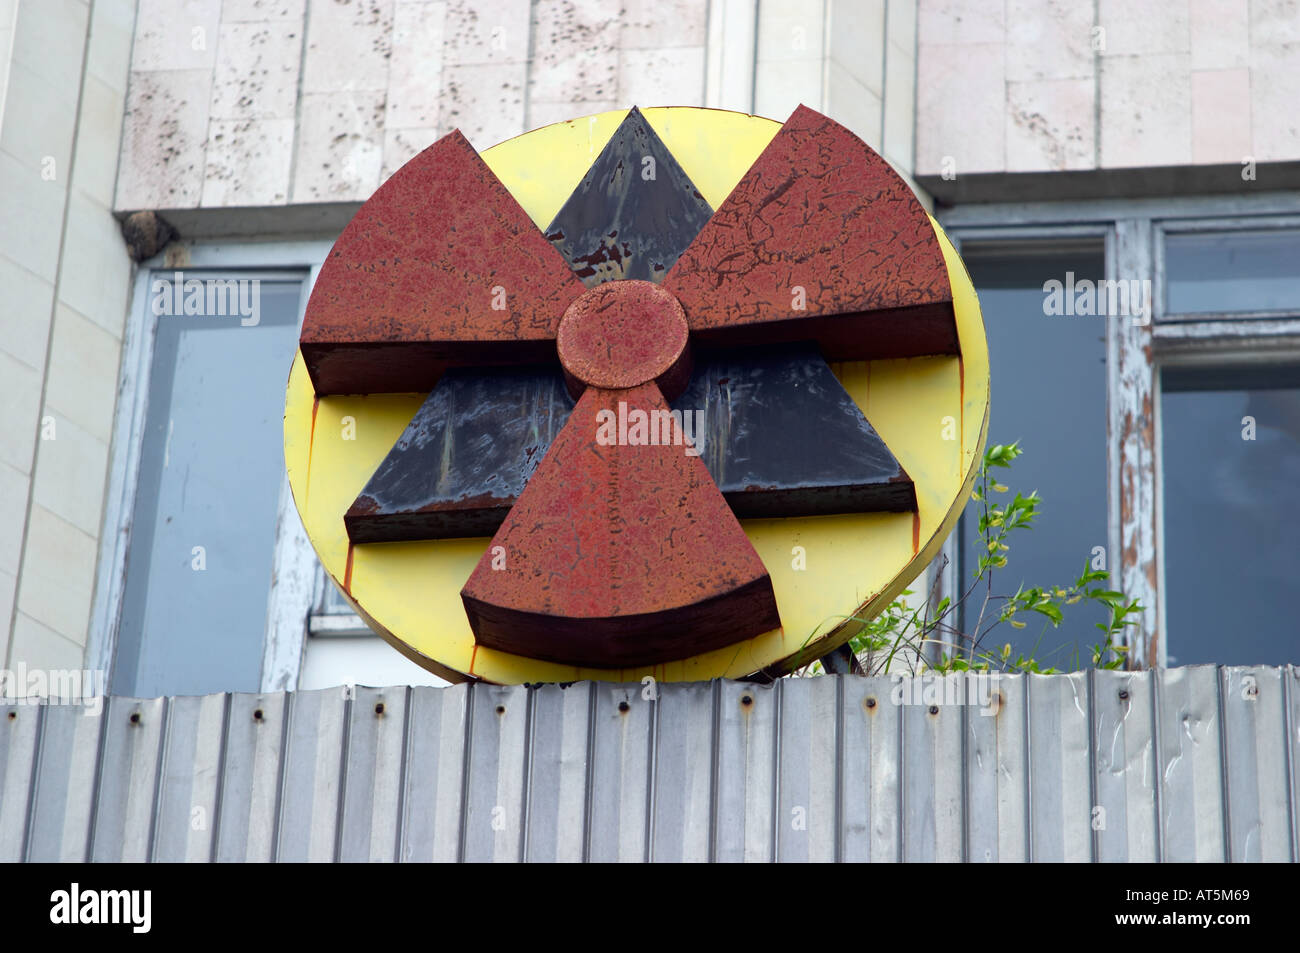 a radiation sign in Prypiat (Chernobyl), Ukraine. 19 years after the tragedy. - Stock Image